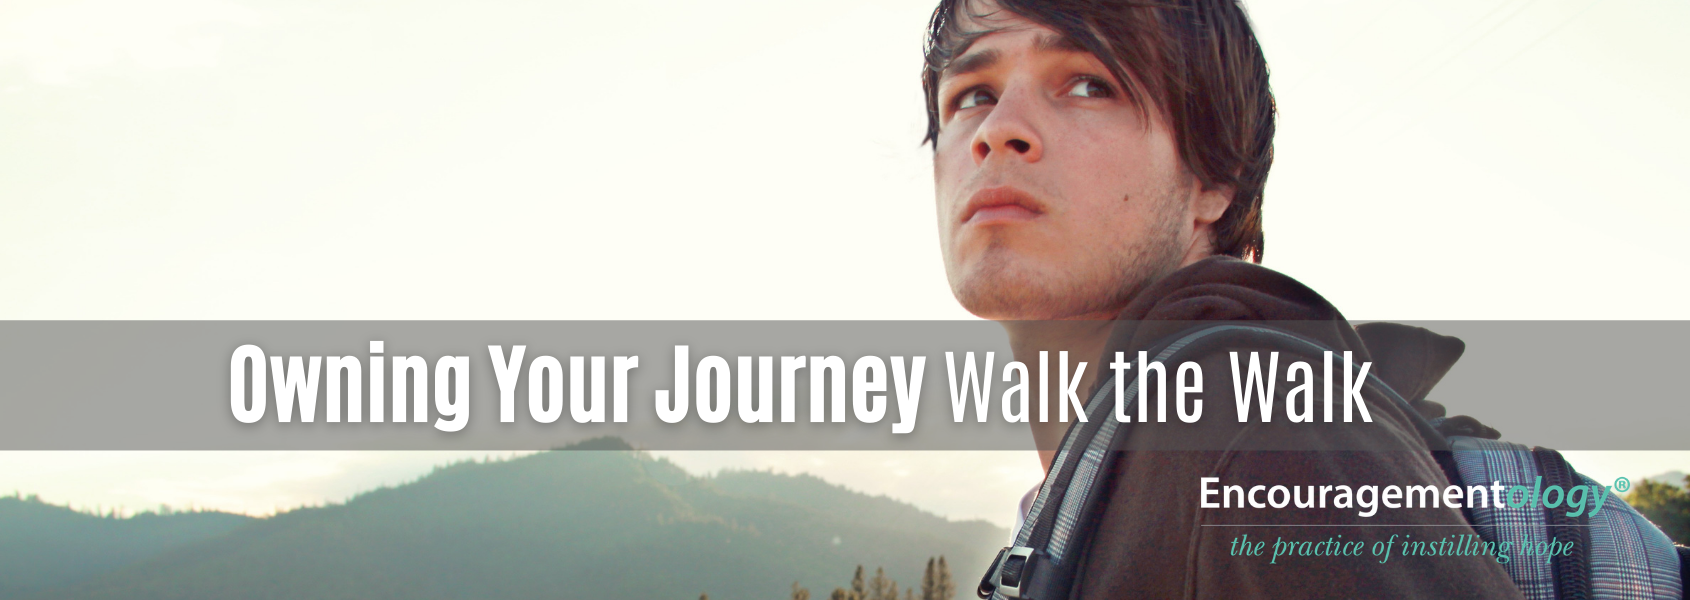 Owning Your Journey